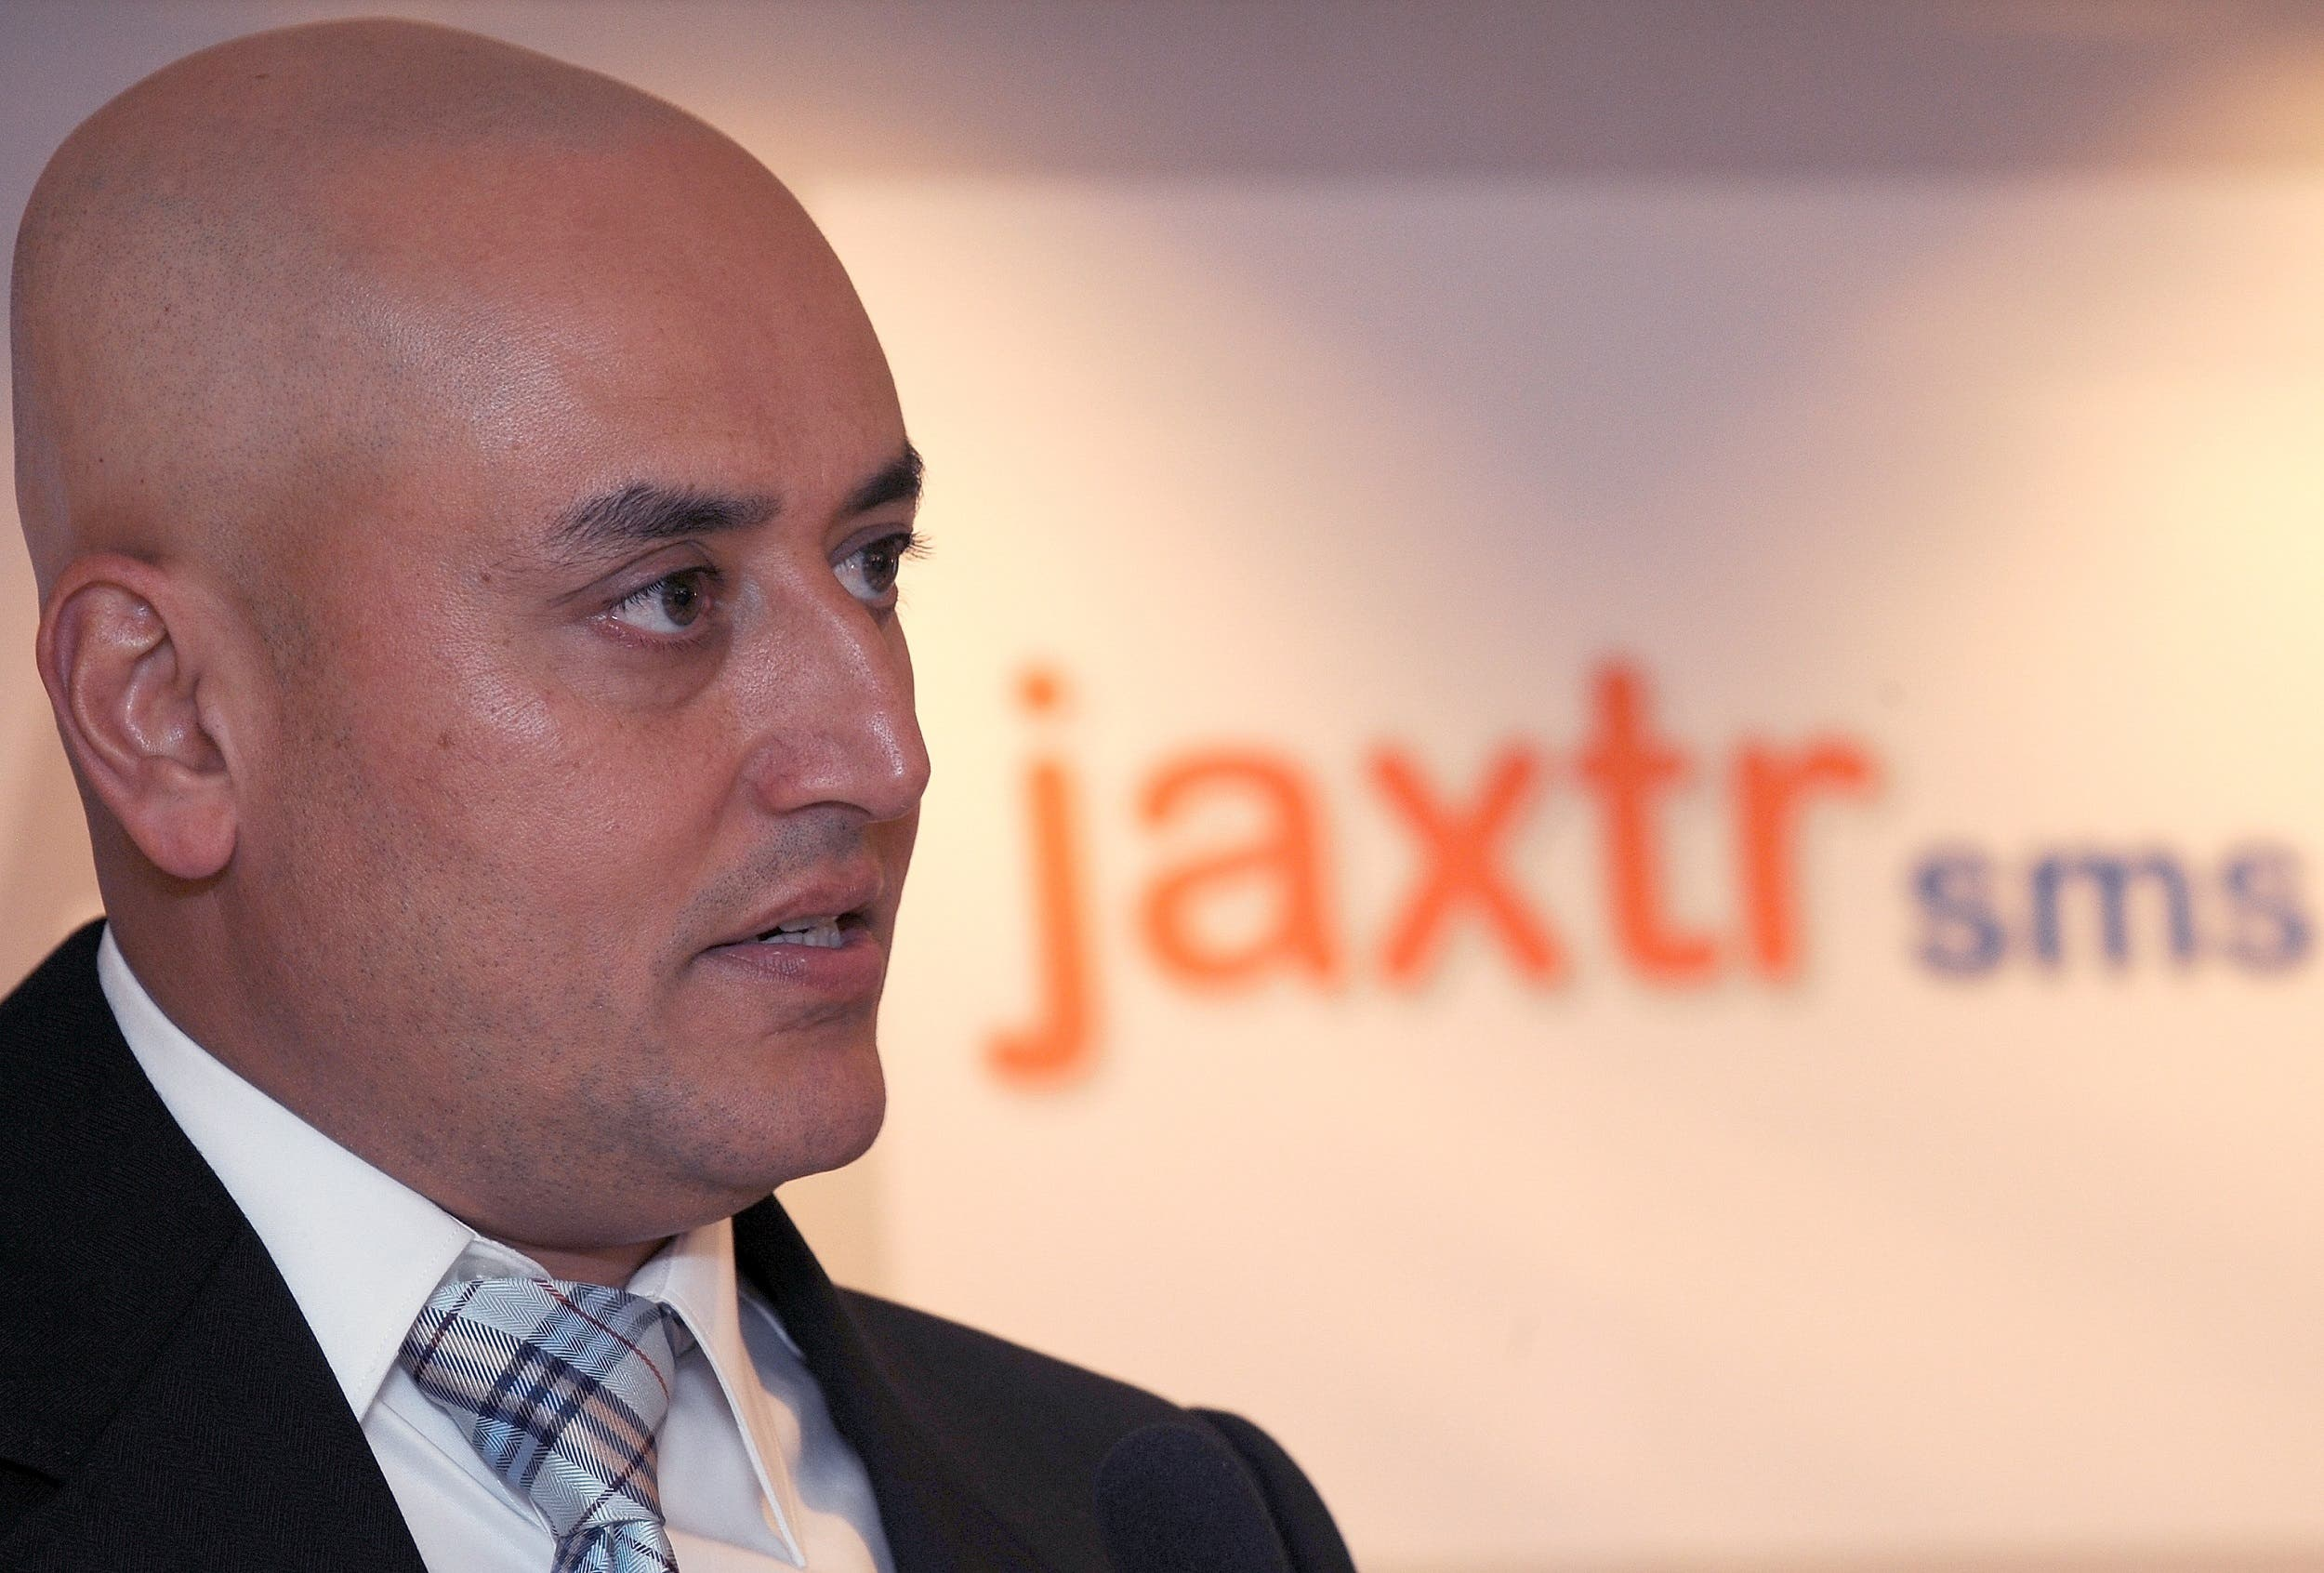 Sabeer Bhatia announcing the launch of his venture Jaxtrsms in Mumbai on November 22, 2011. (AFP)